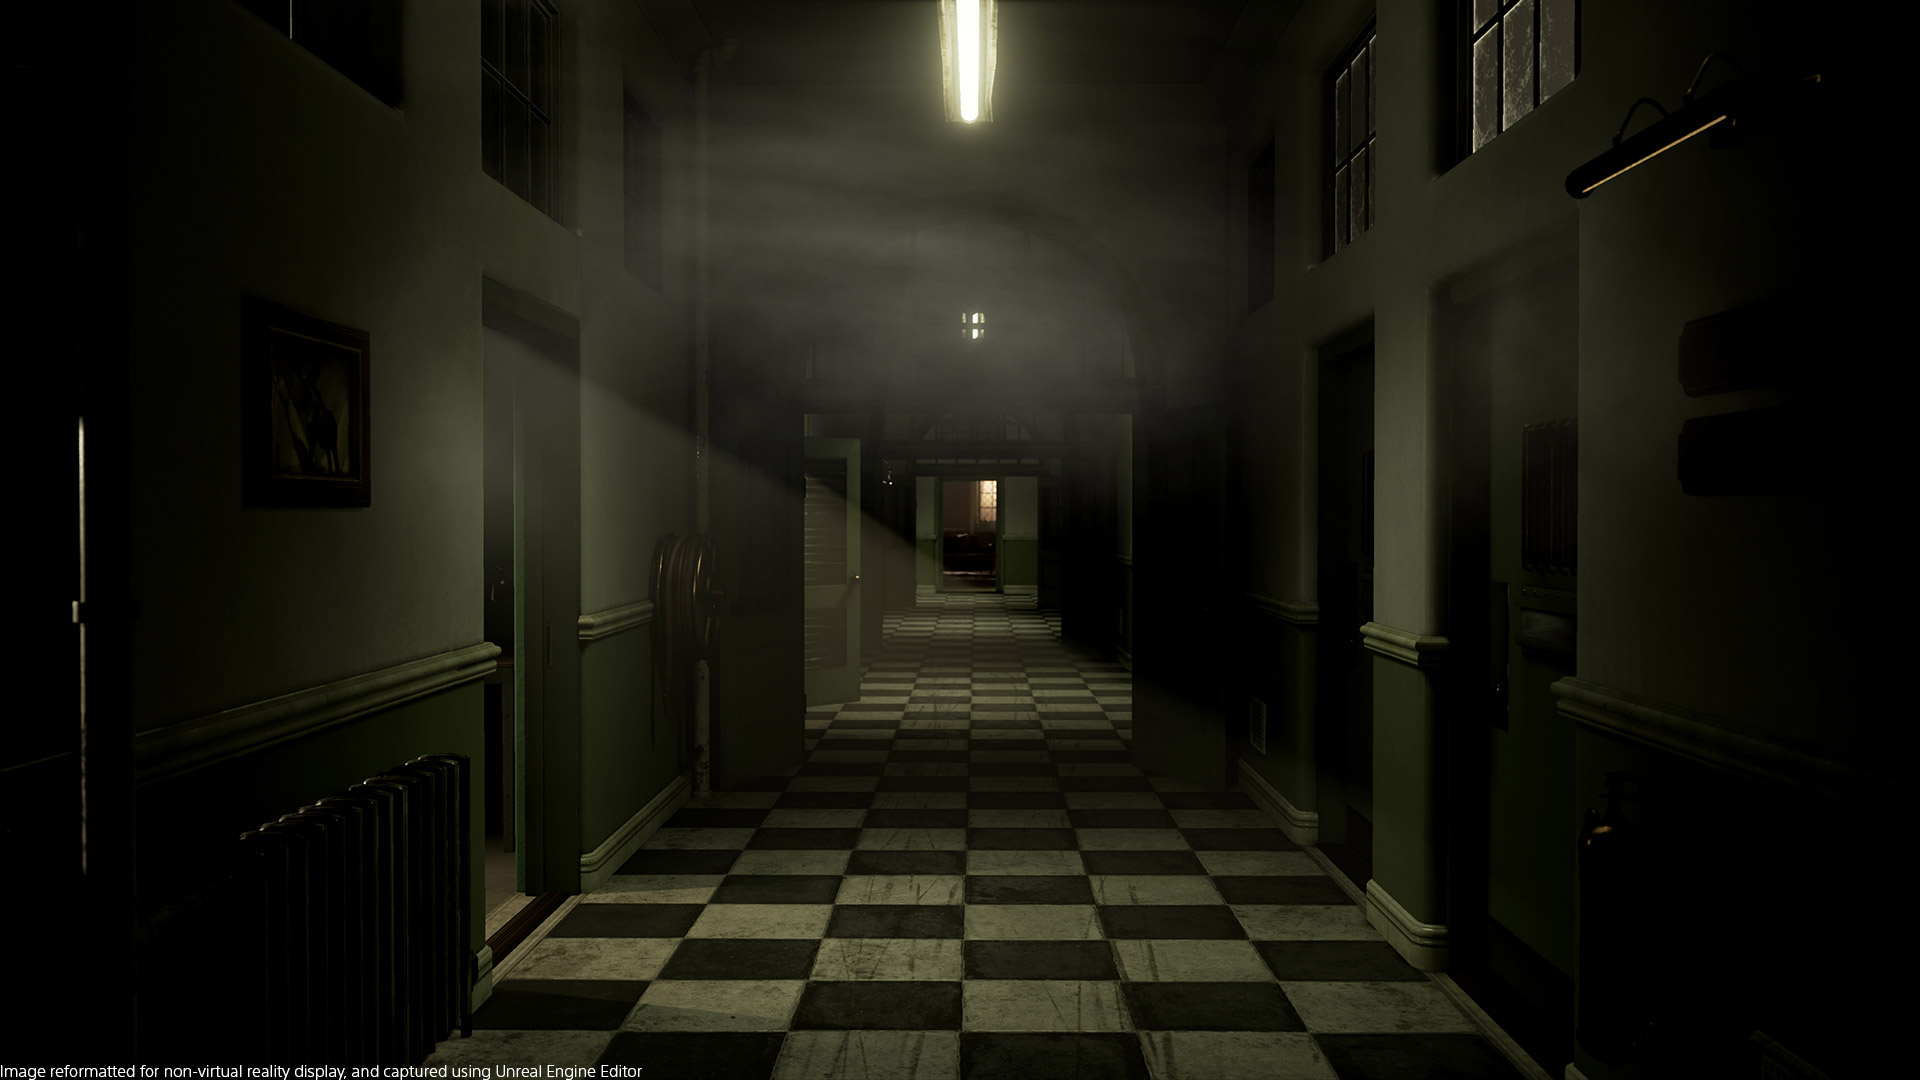 The Inpatient hallway